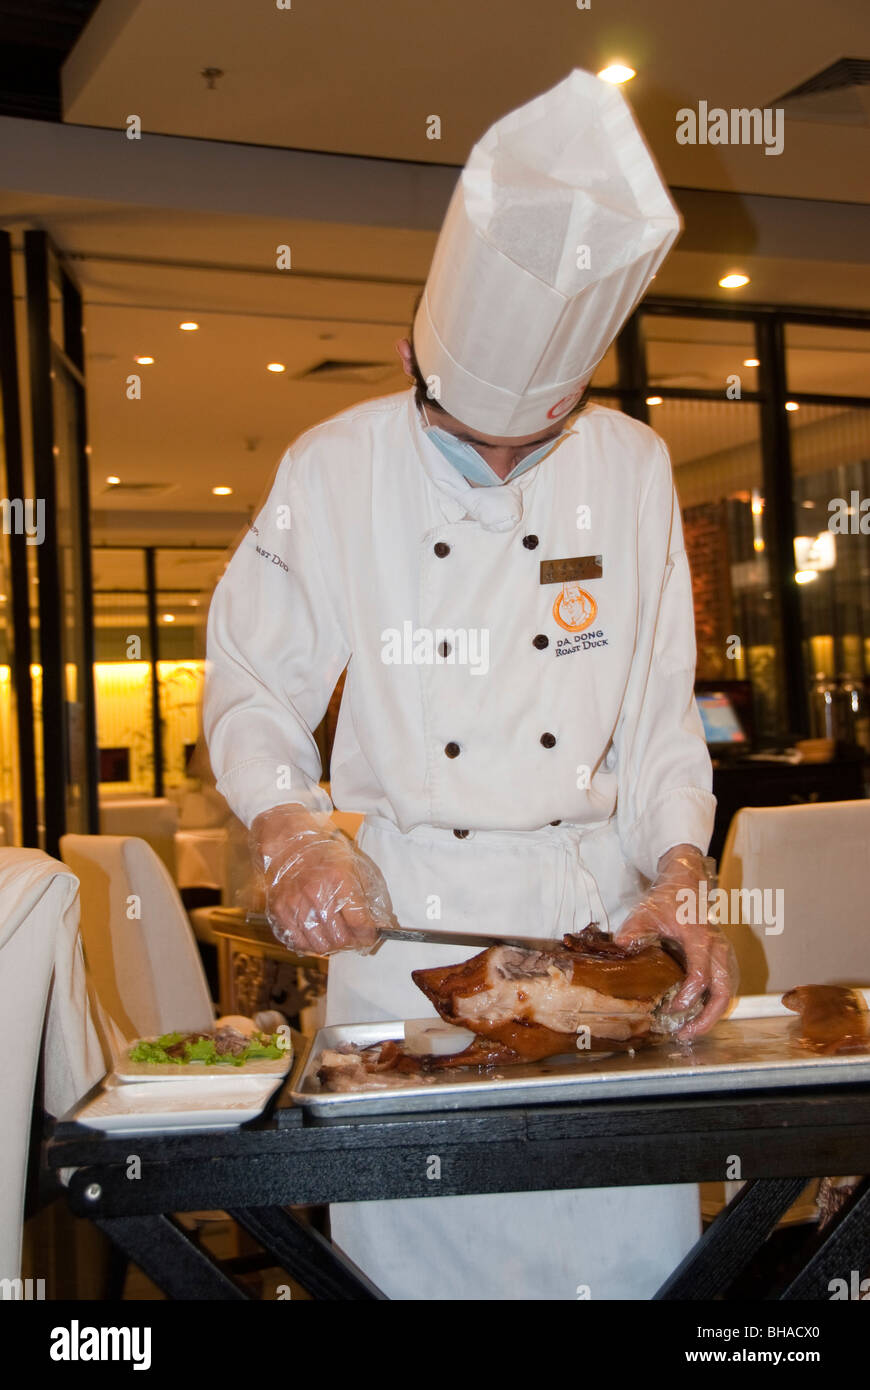 "Beijing, CHINA- ""Da Dong Roast Duck"" ""Peking Duck"" Chinese Restaurant, Chef Carving Meat at Table in Dining Room Stock Photo"